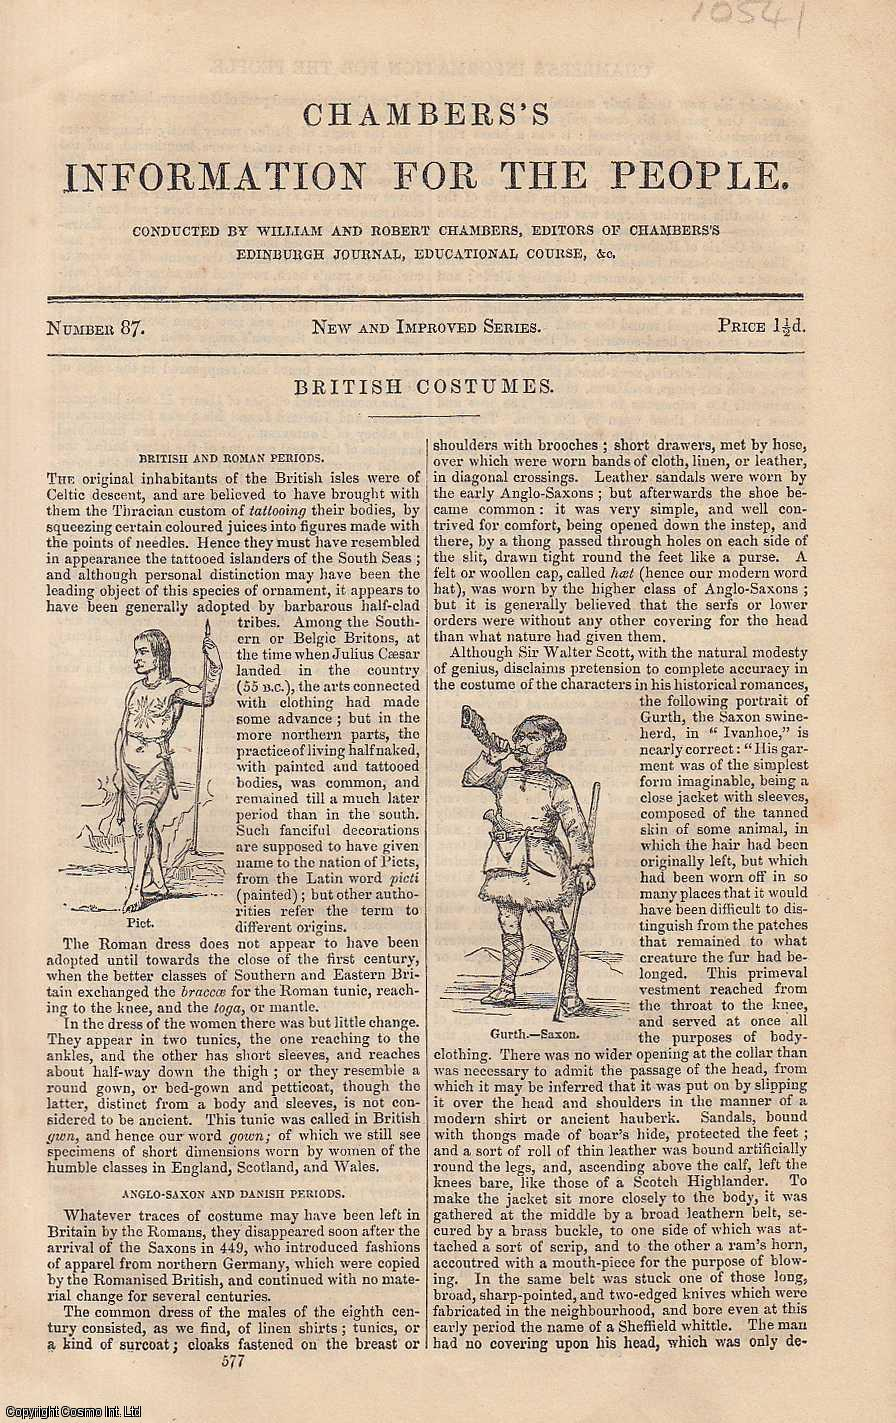 British Costumes. An article from Chambers's Information for the People., Chambers, William & Robert.